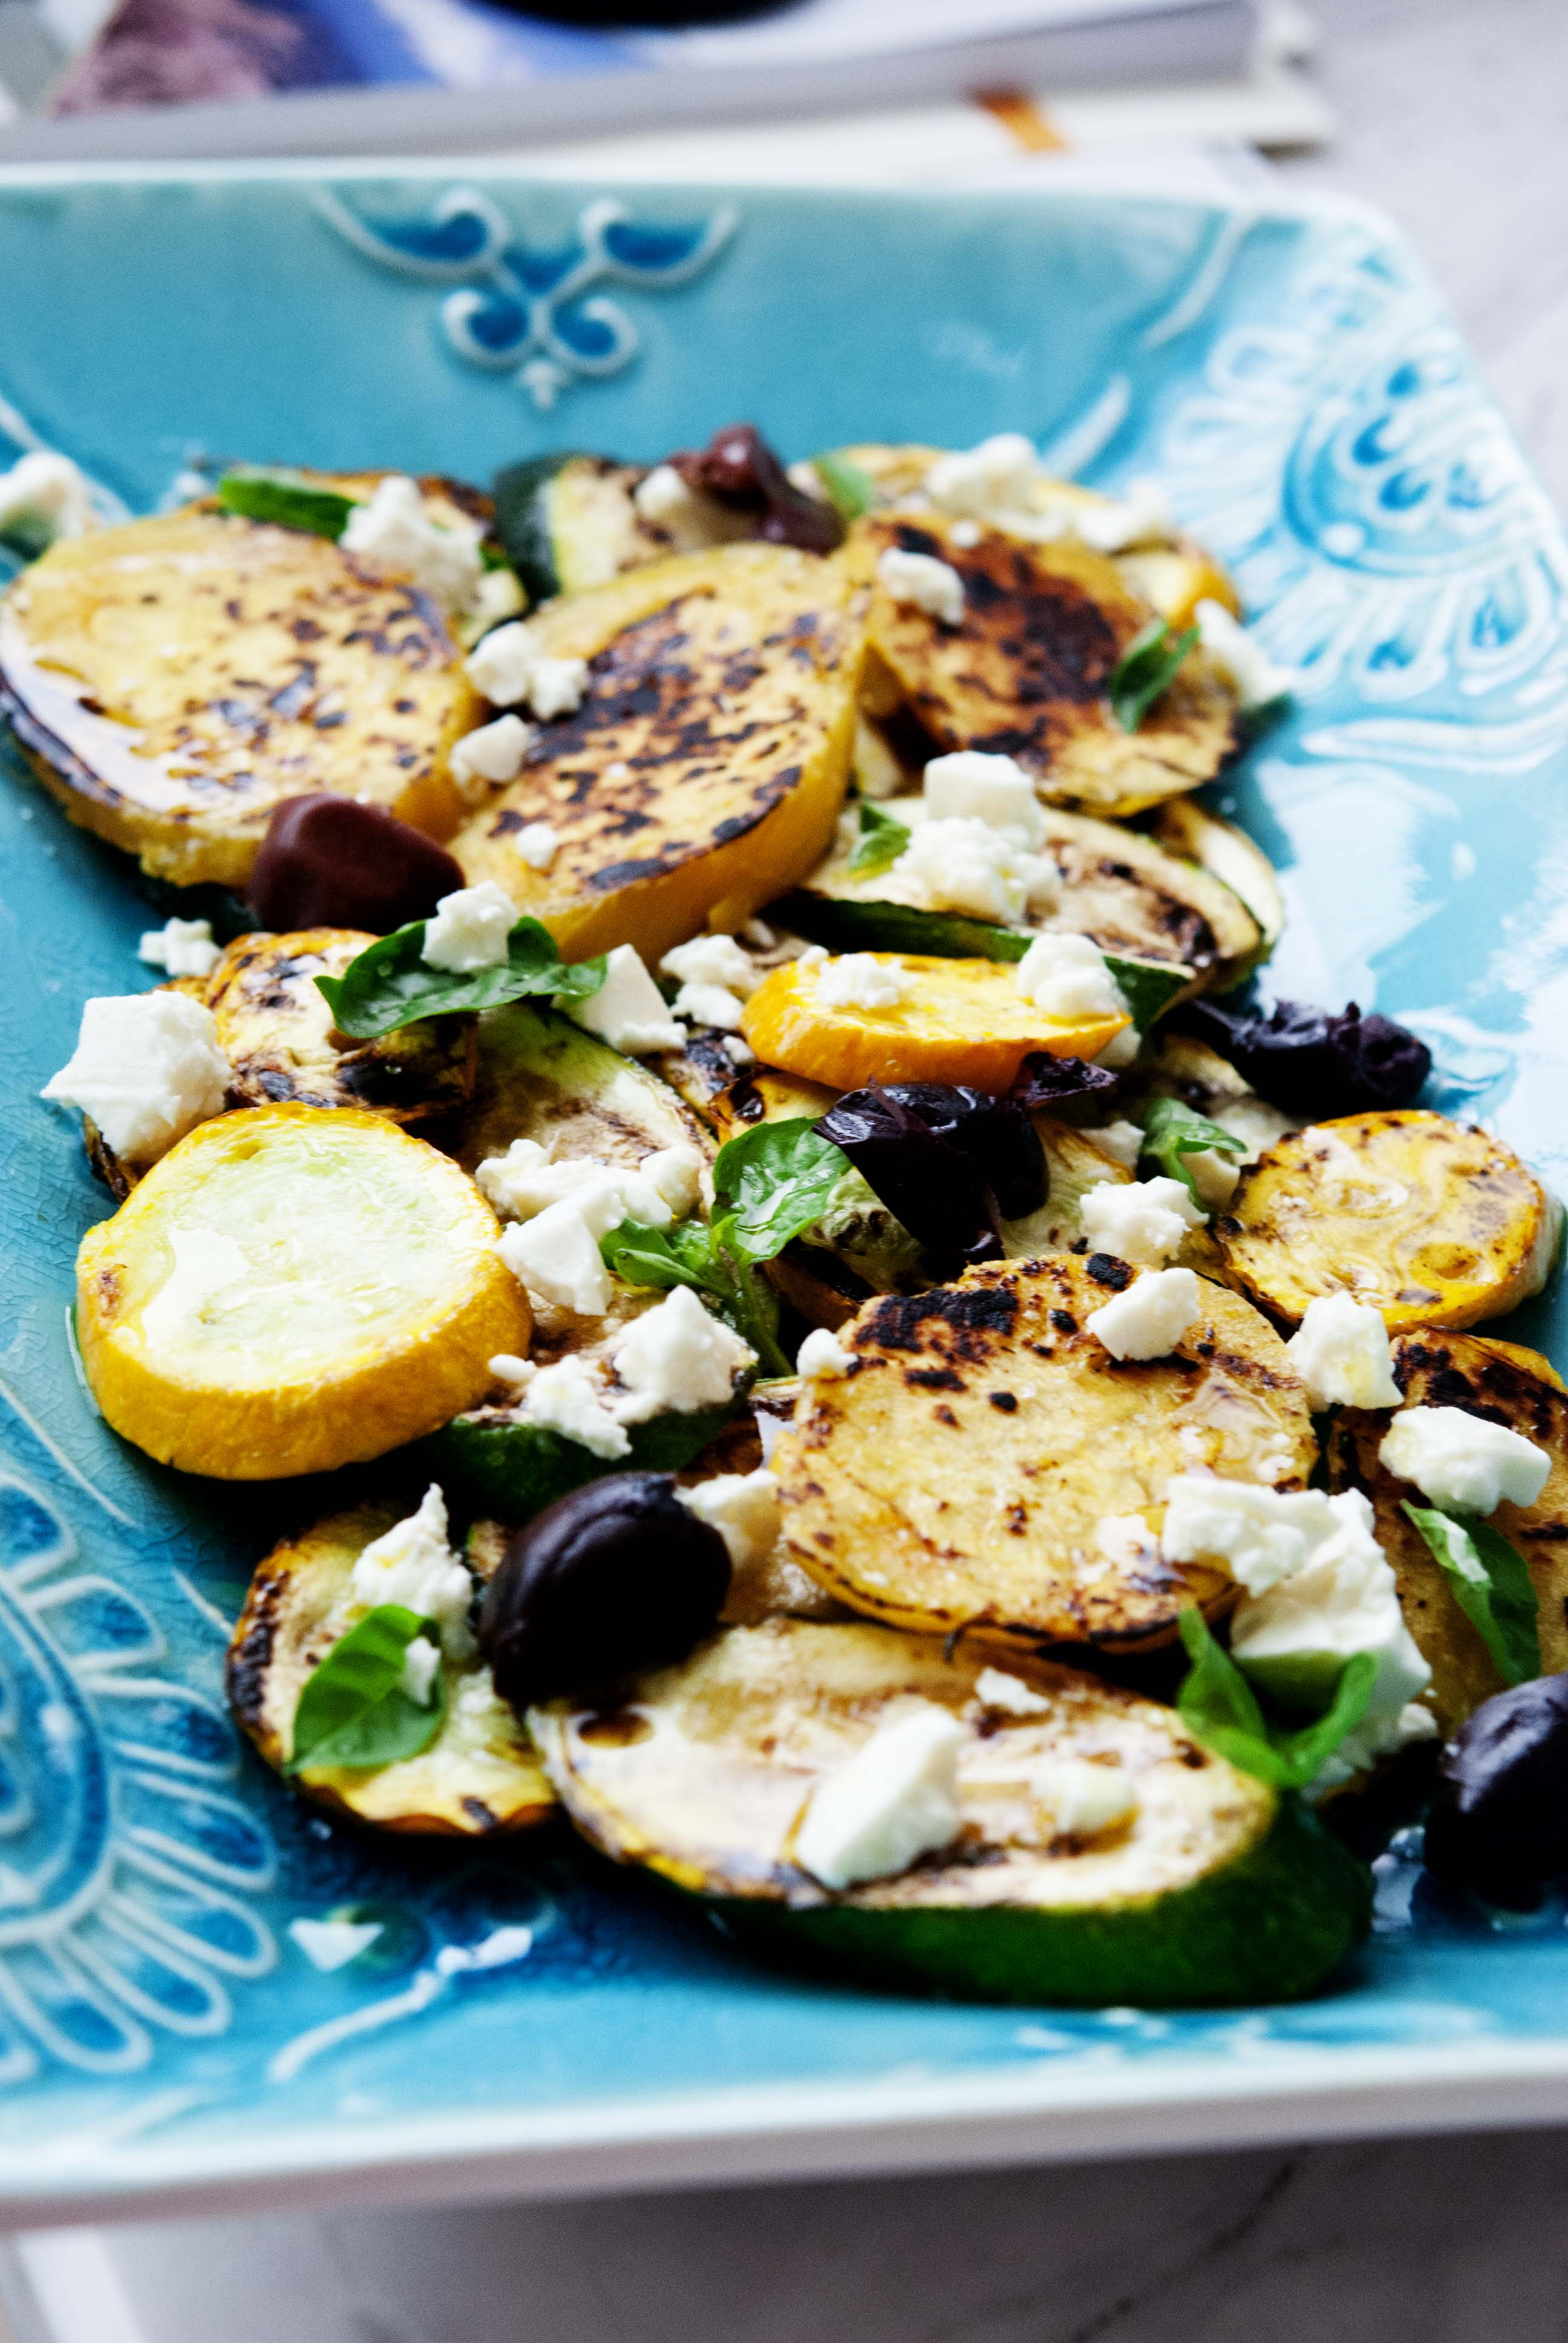 expatcucina grilled salad9